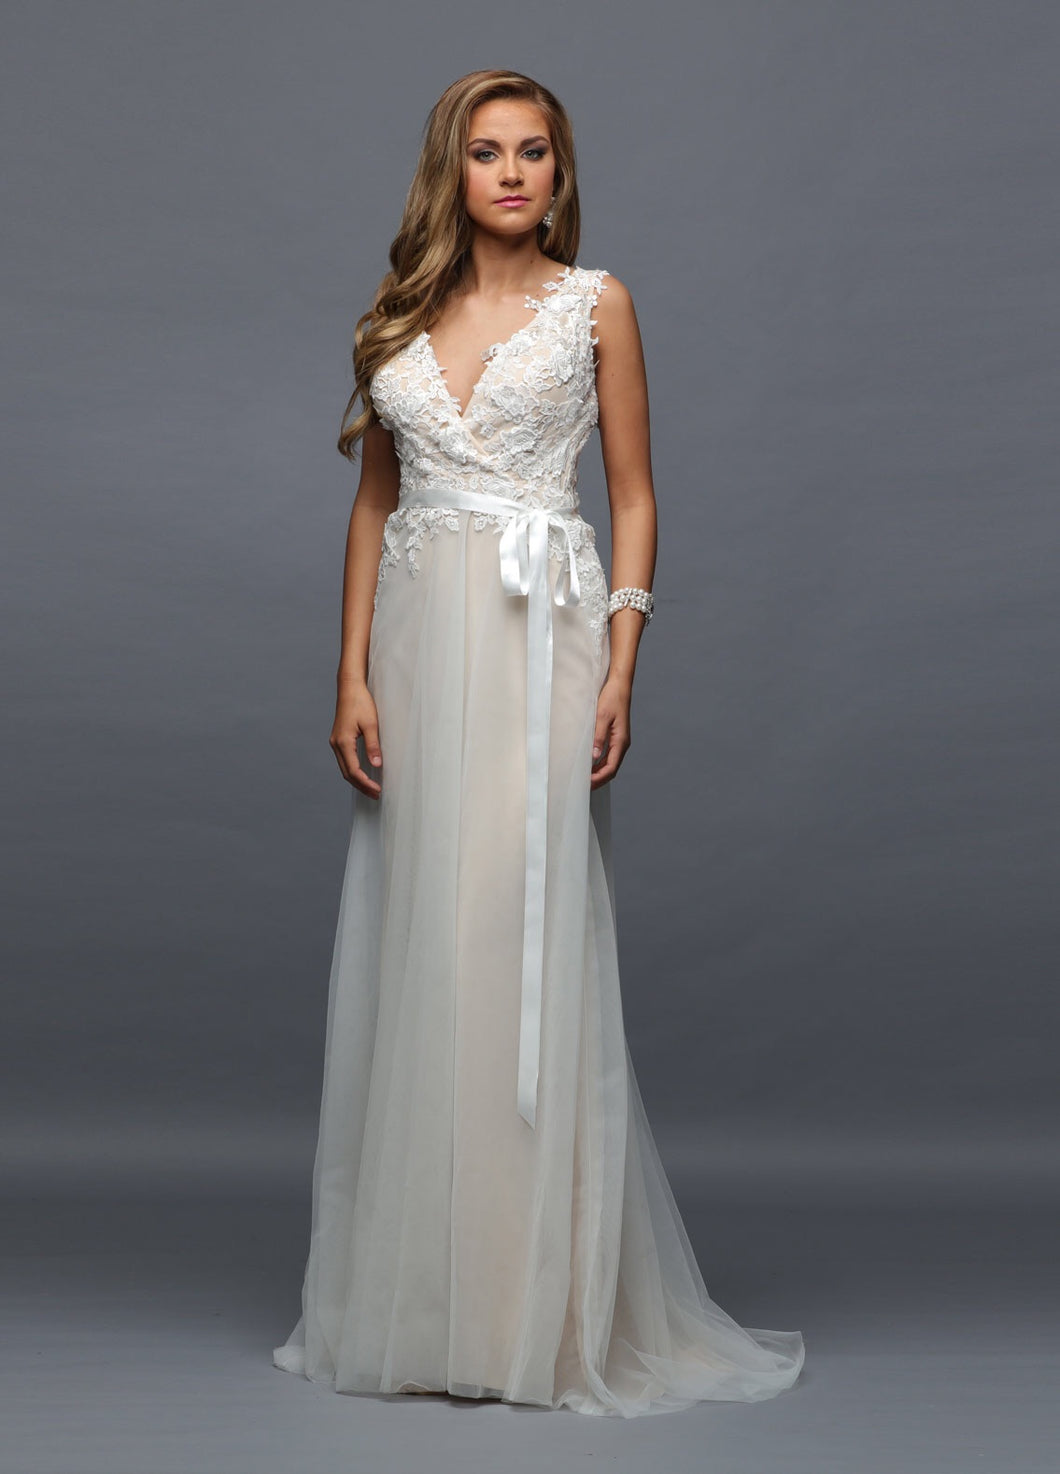 Tulle & Lace Destination Wedding Gown – Chicago Bridal Store Company